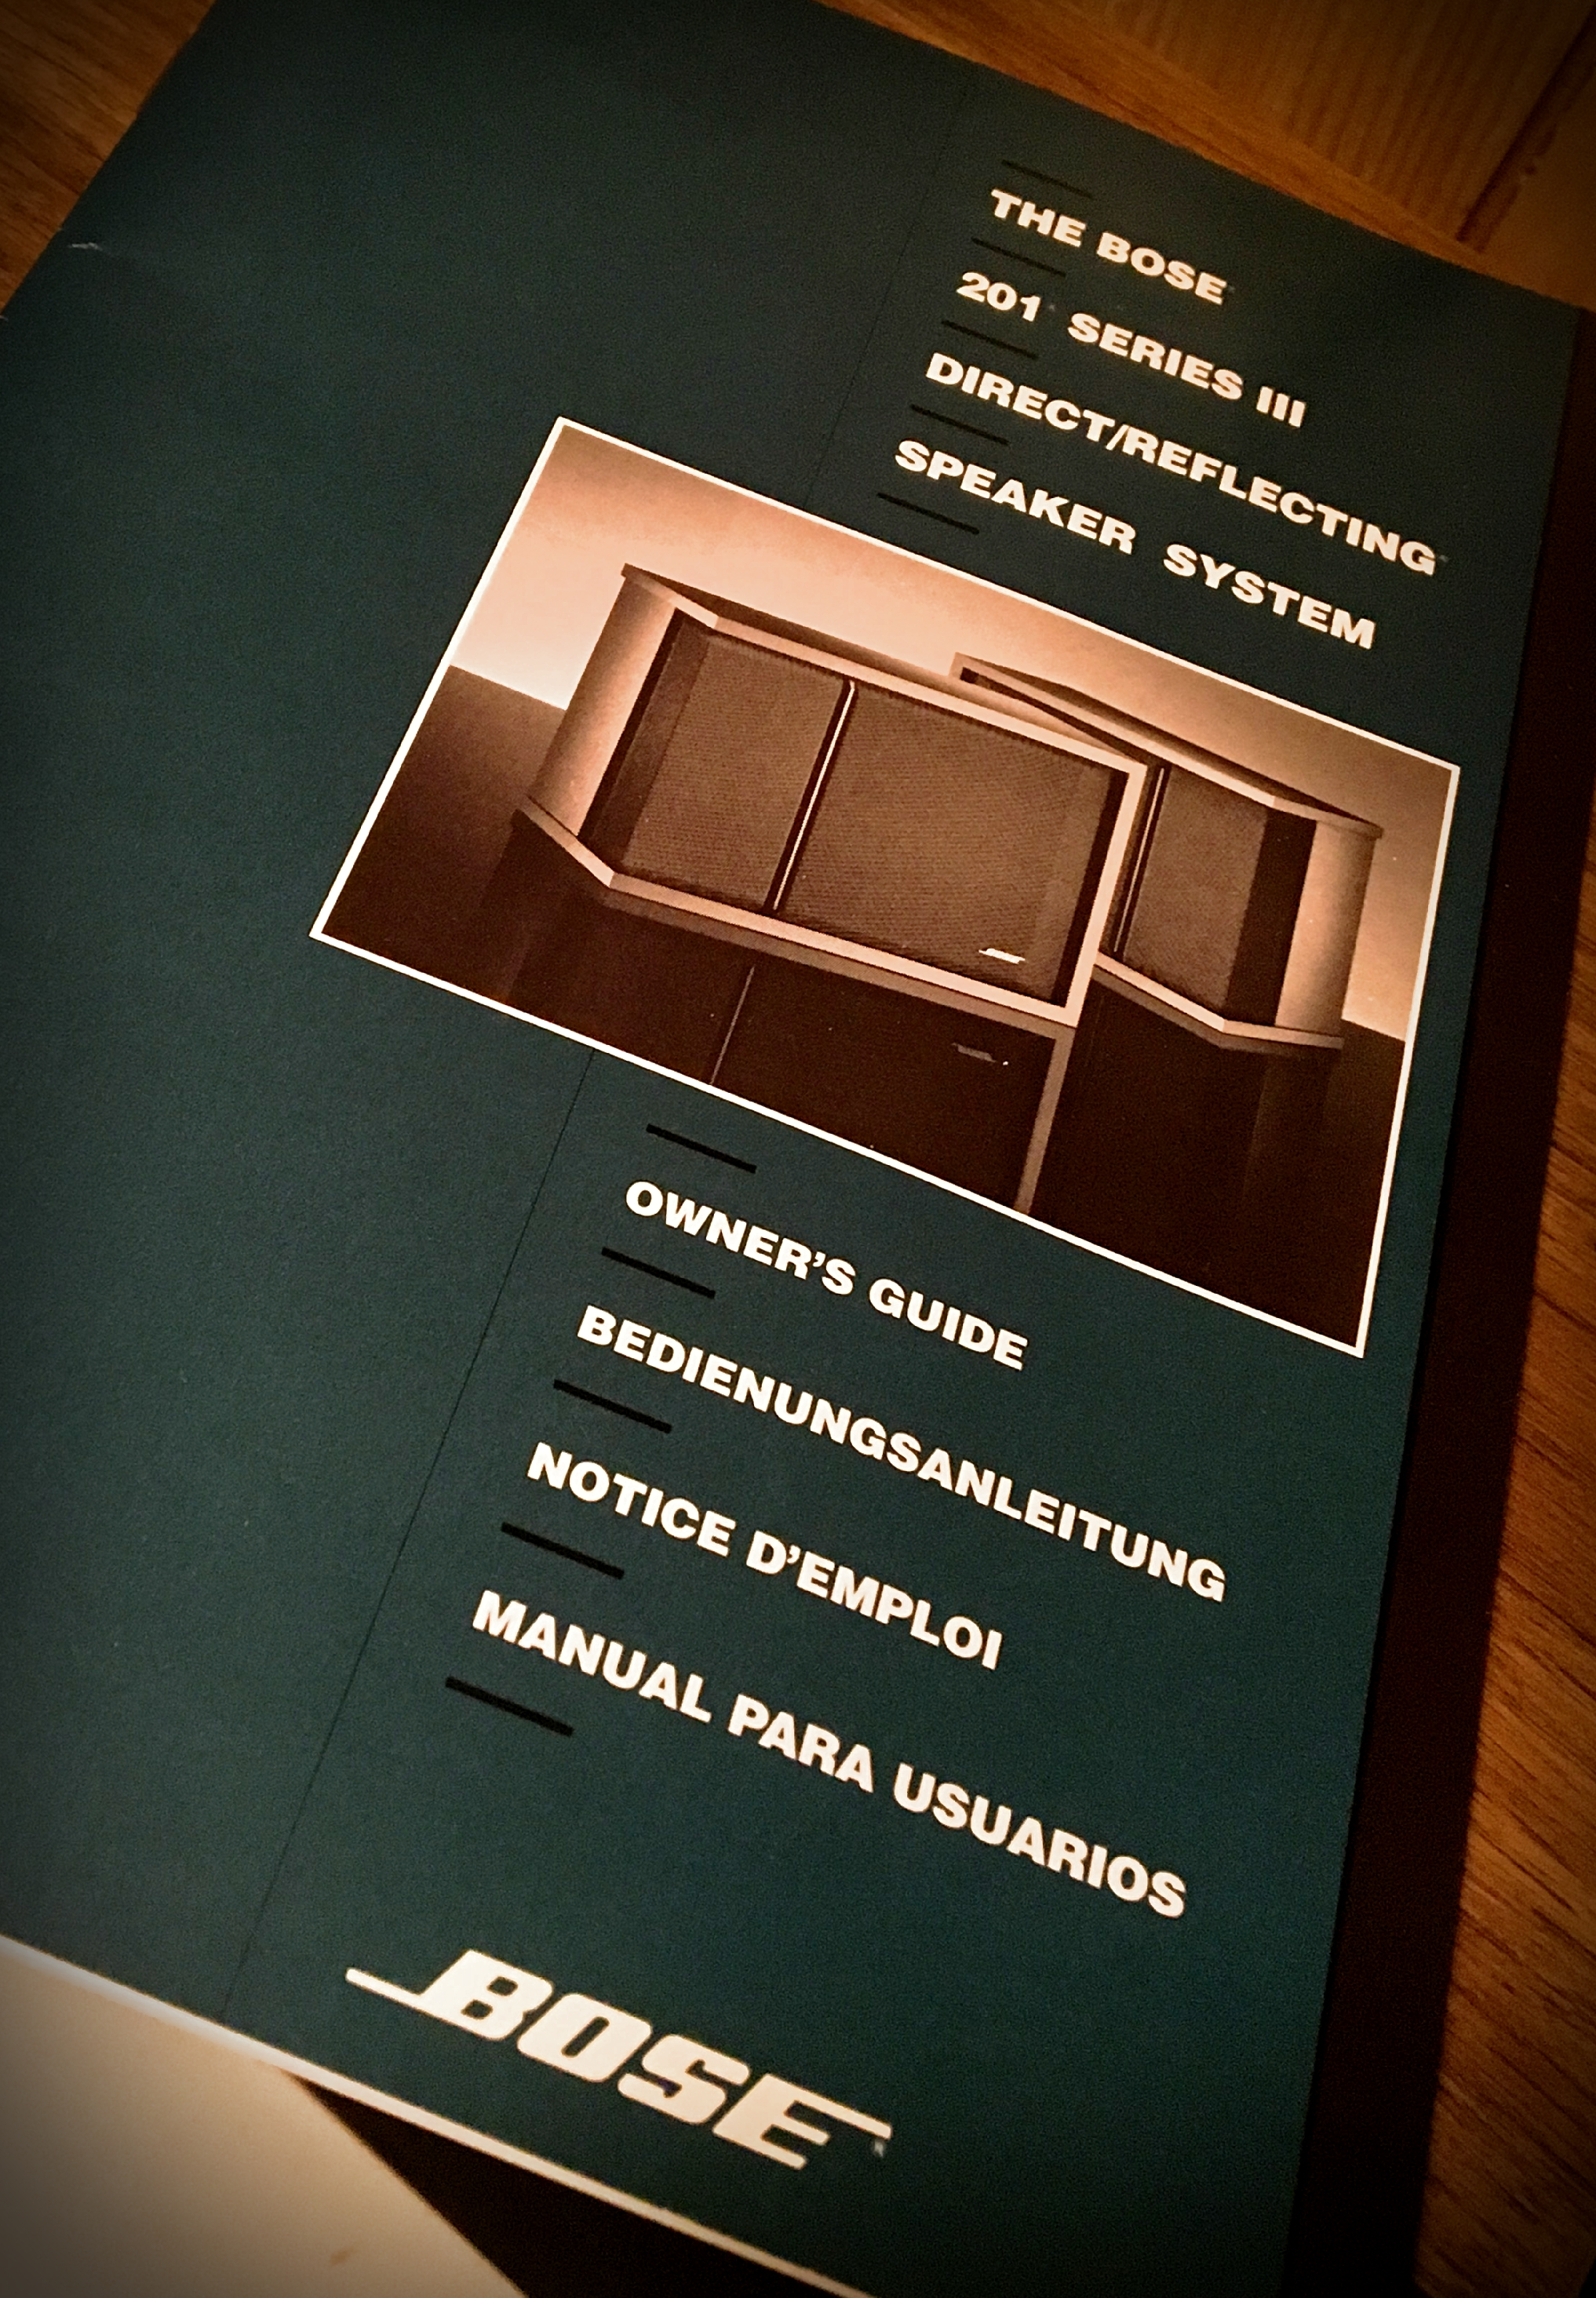 Das Book: The owner's guide, ca. 1991, for The Bose 201 Series III Direct/Reflecting Speaker System.